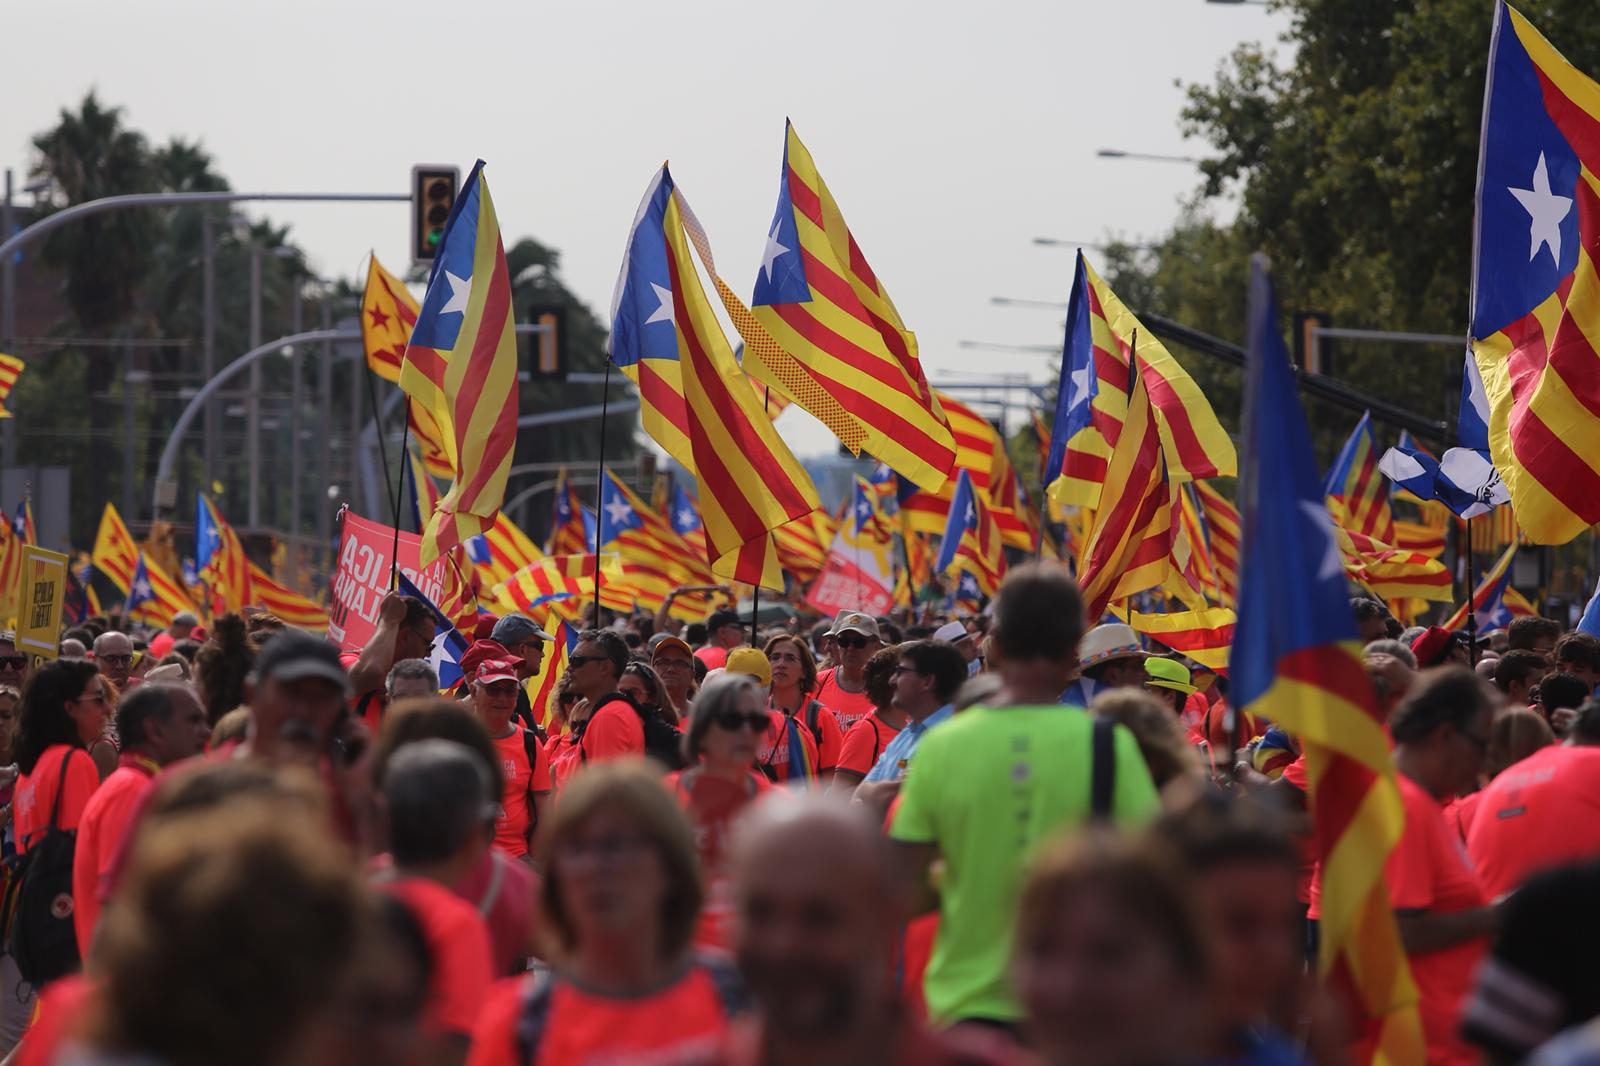 The plans for this year's Catalan national day protest